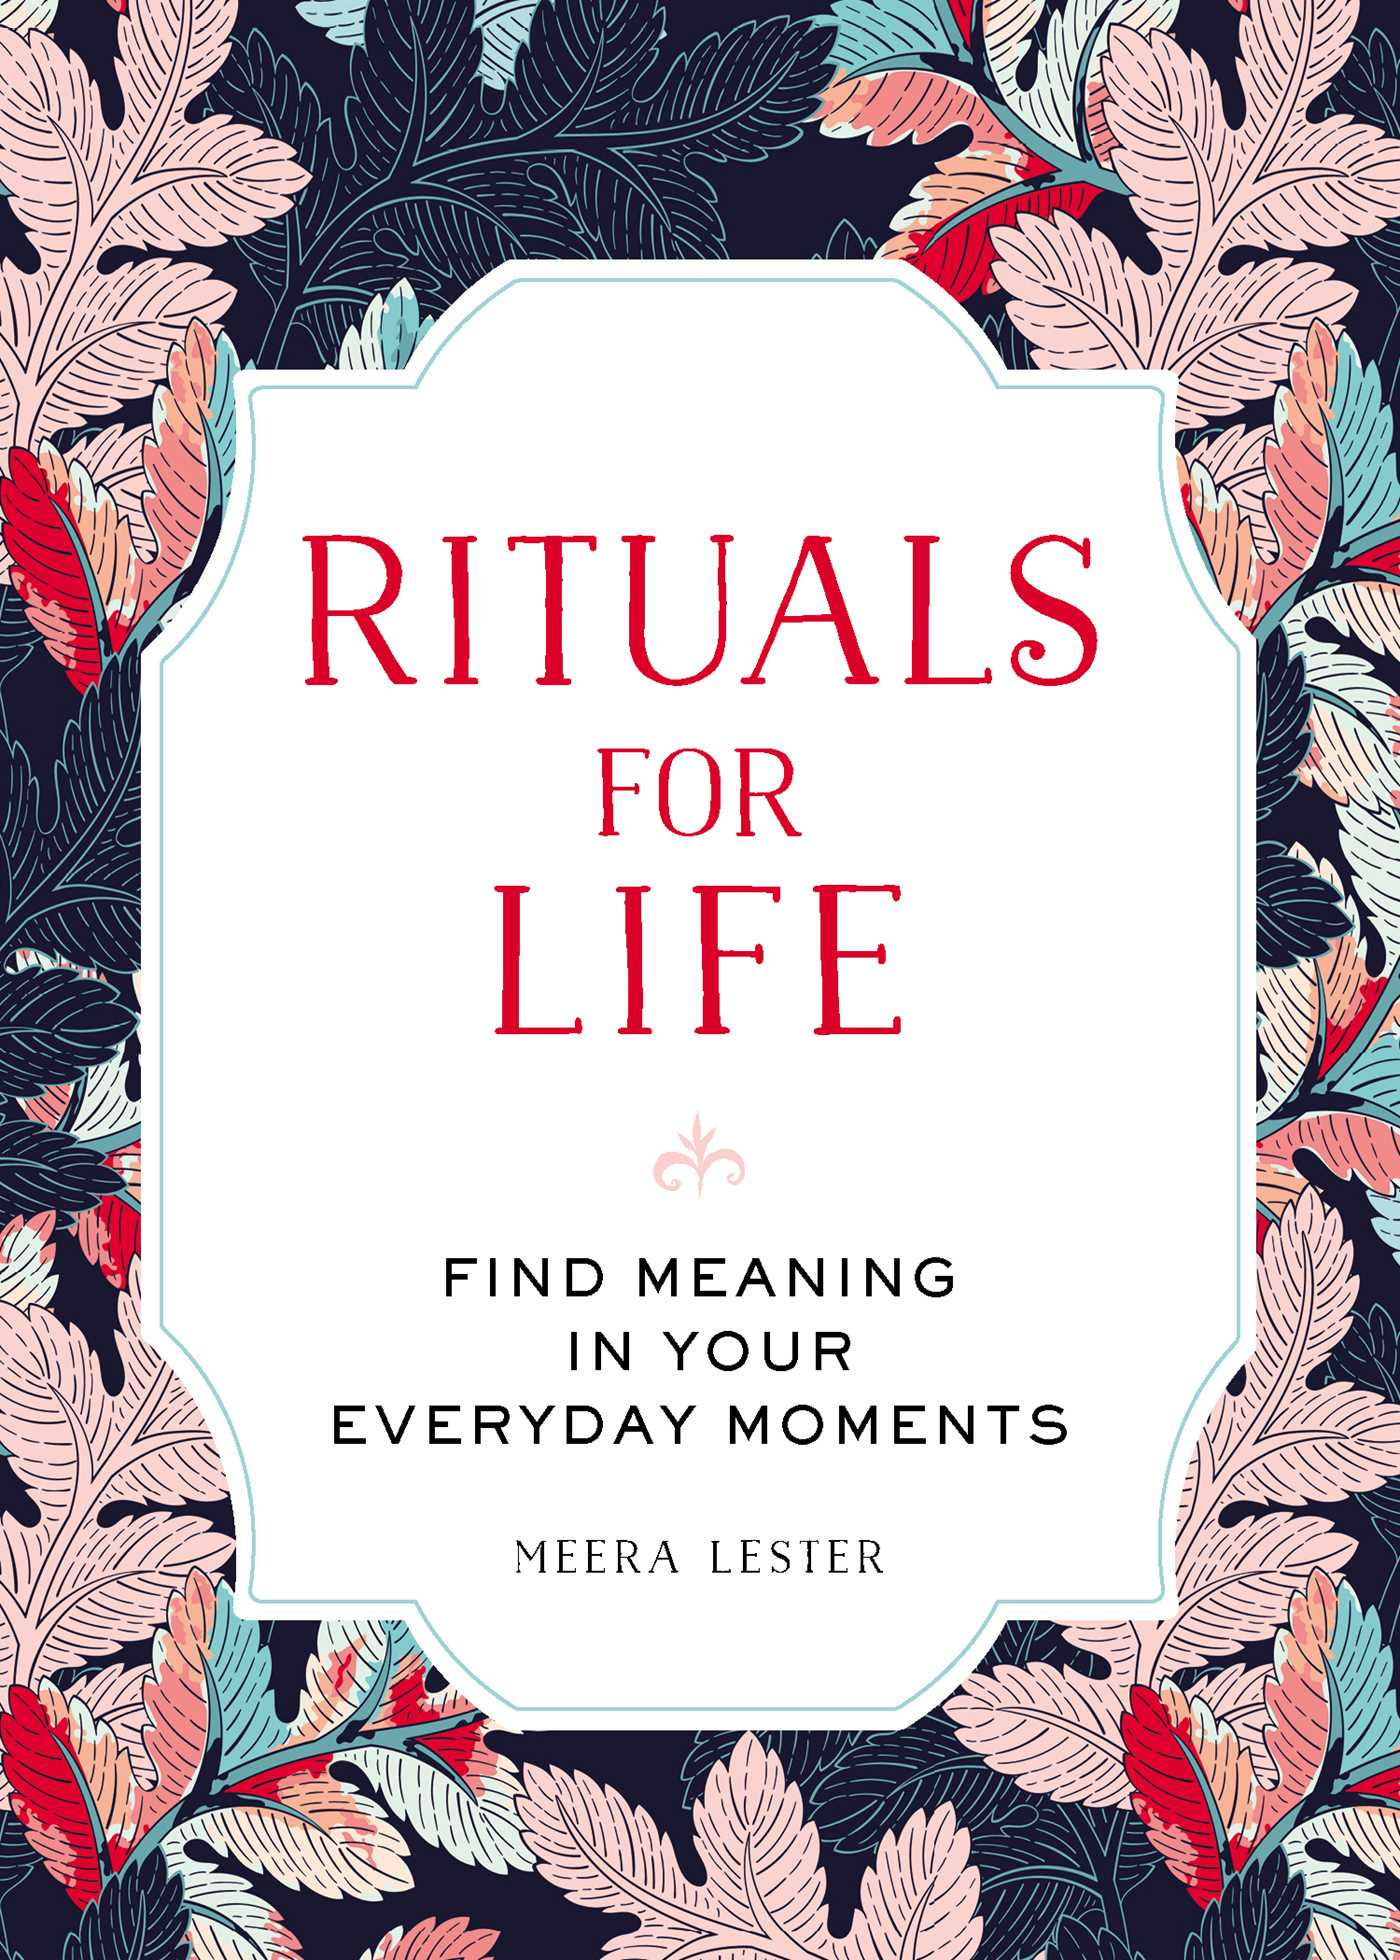 Rituals for life 9781507205259 hr